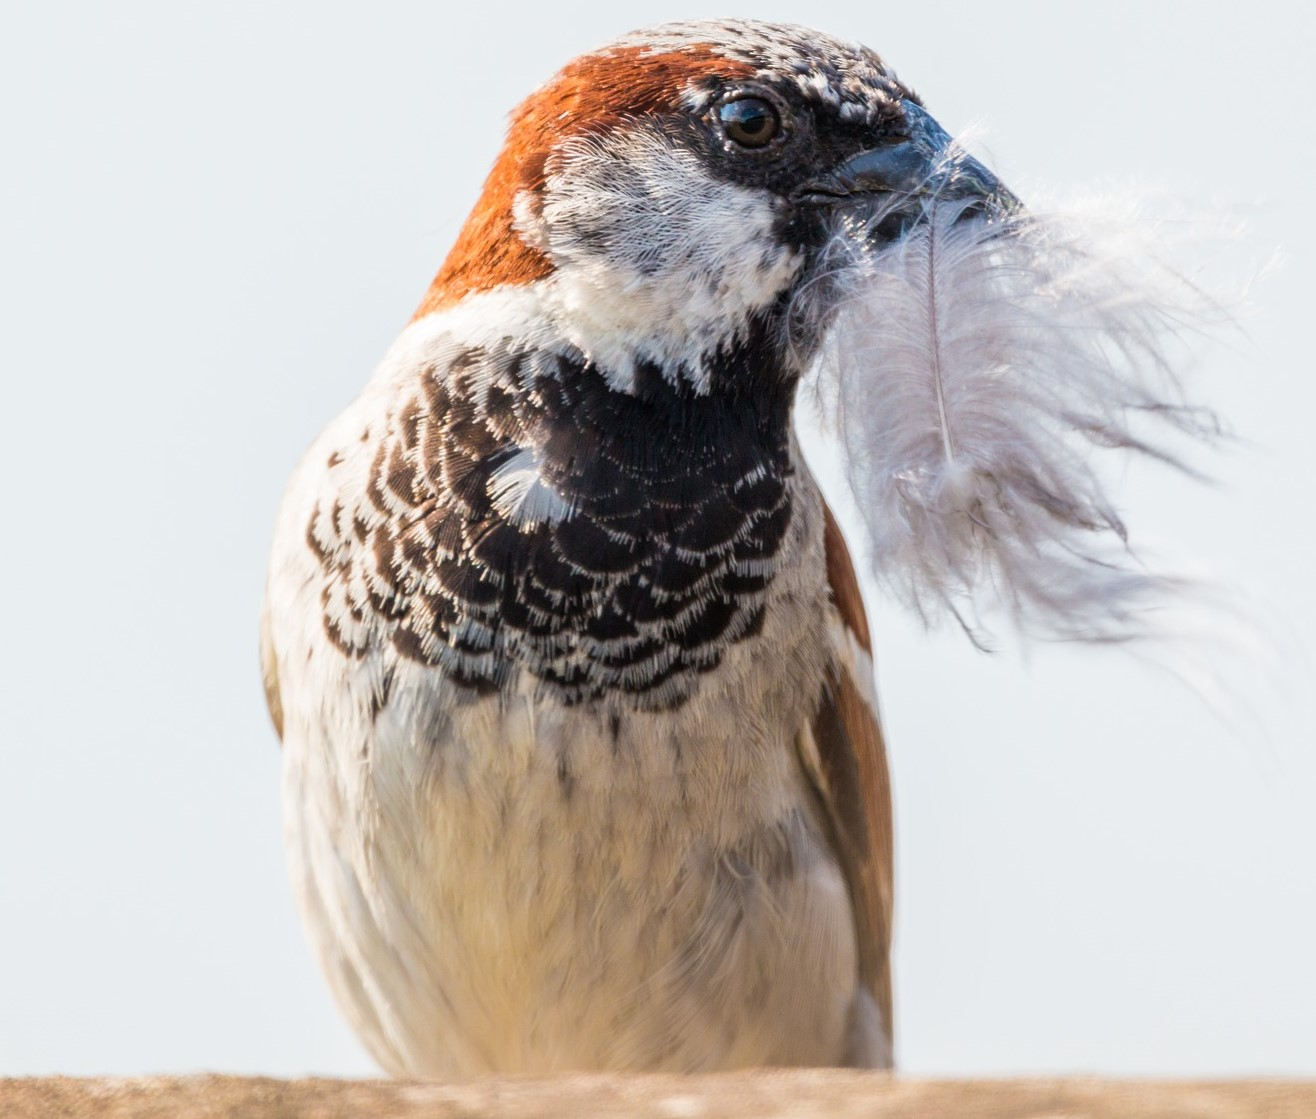 Image of house sparrow collecting feathers